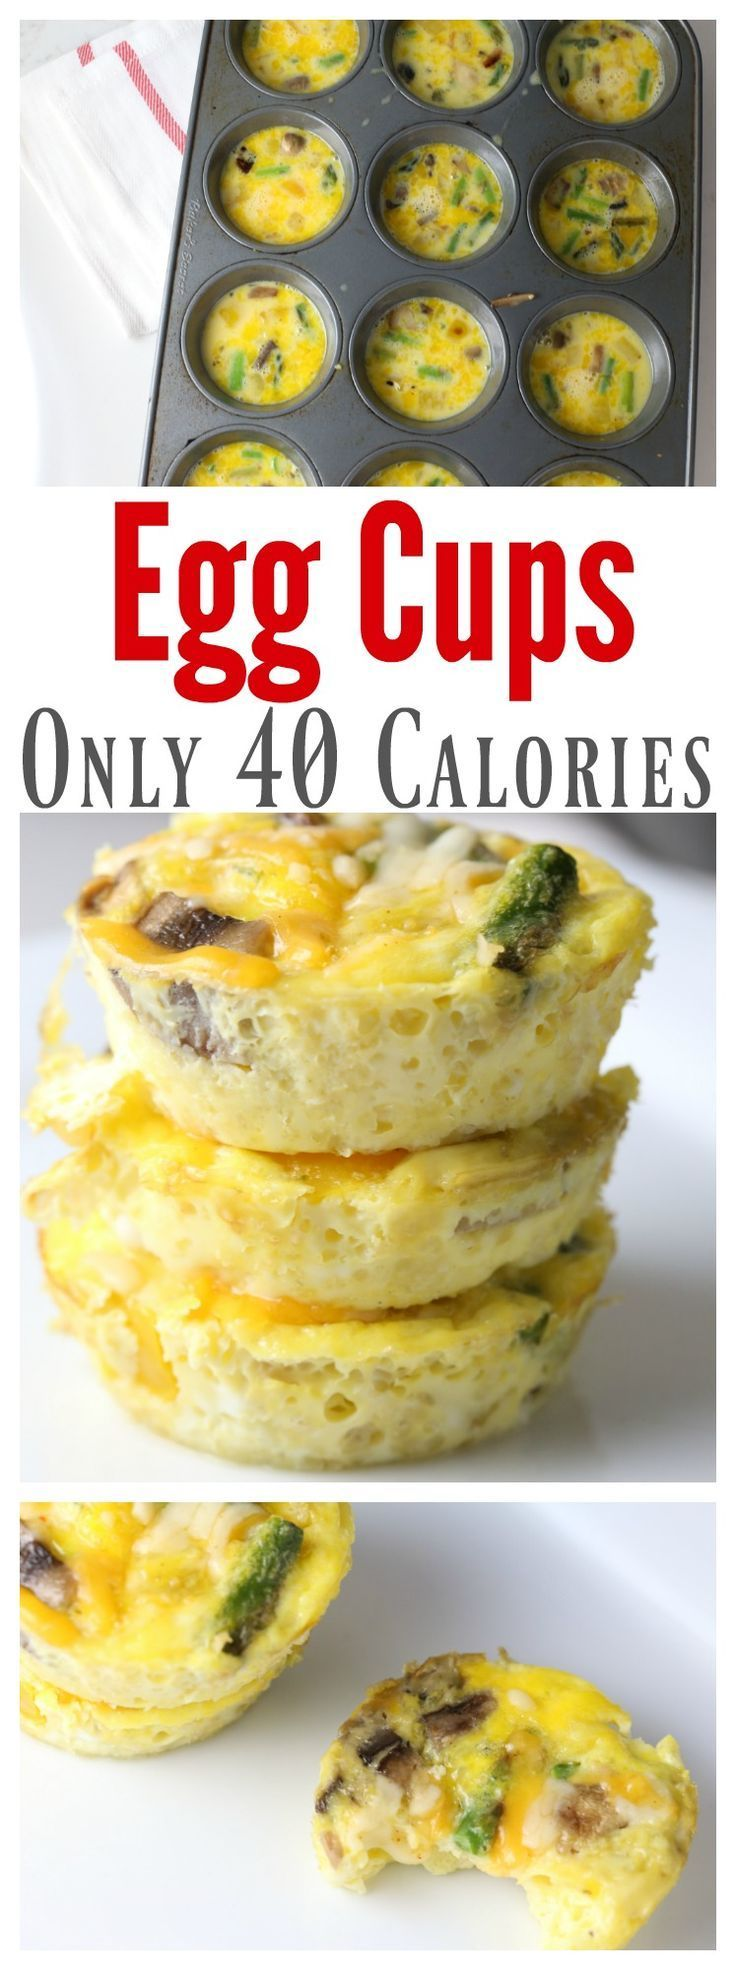 These Low-Calorie Egg Cups are a great way to start off your day with a nutritious and low-calorie breakfast option!